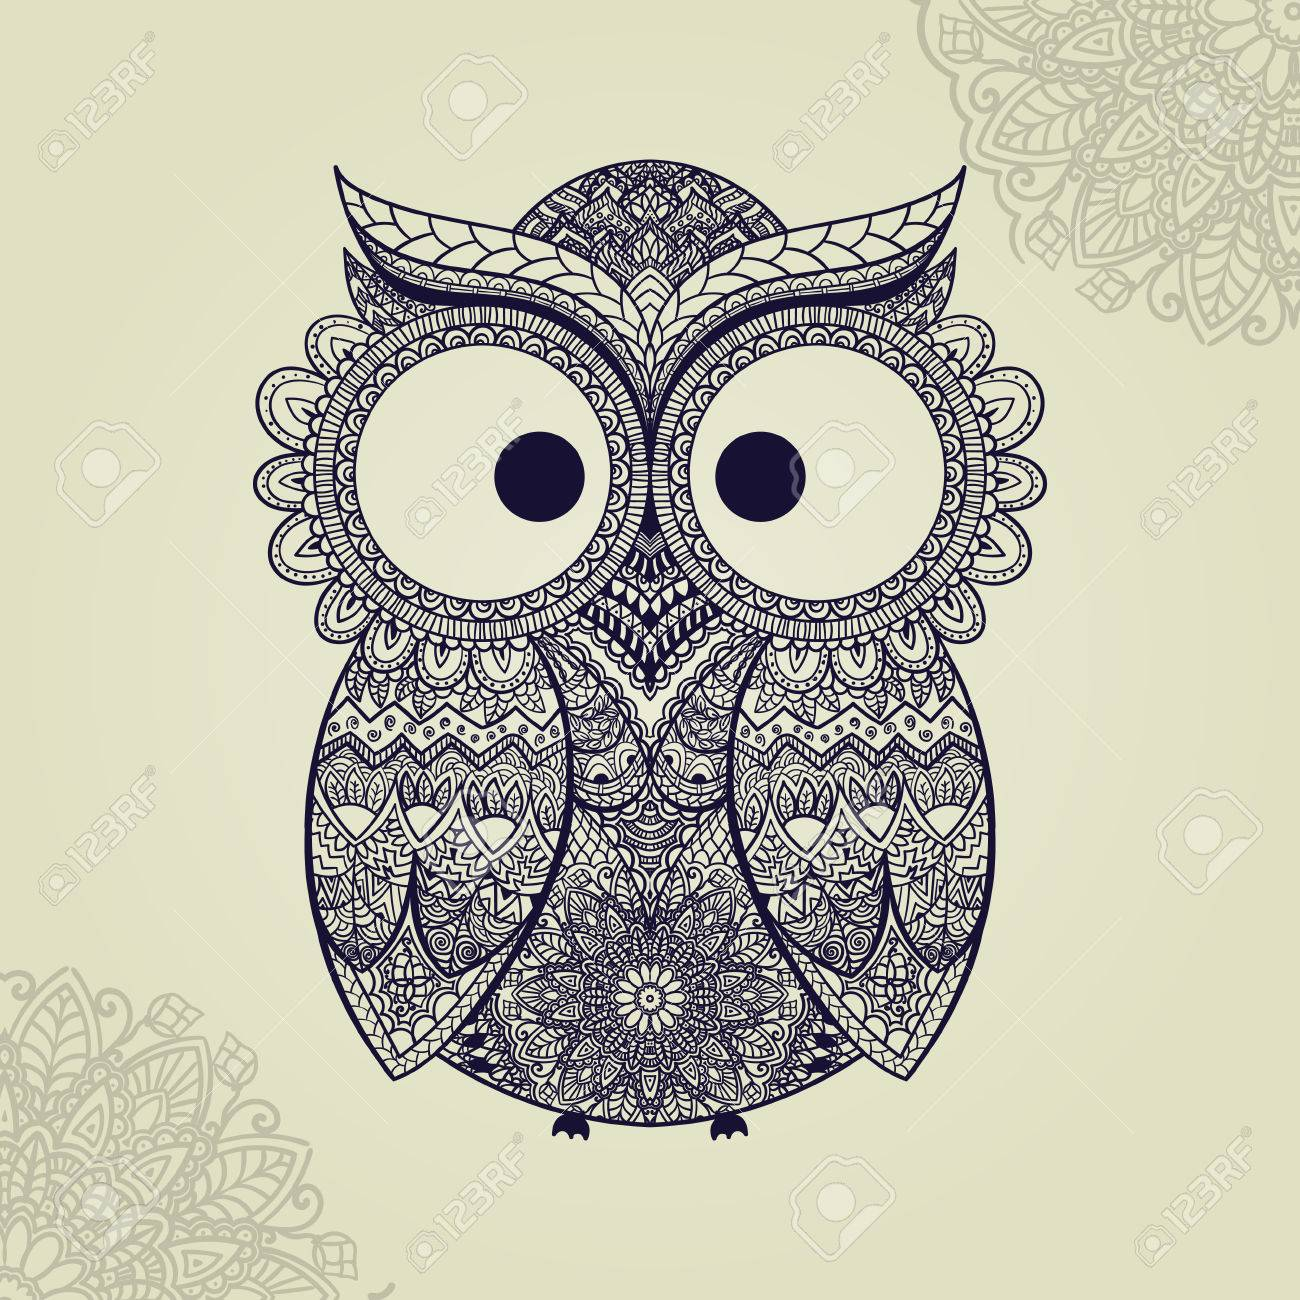 1300x1300 Vector Illustration Of Owl. Bird Illustrated In Tribal.owl Whith